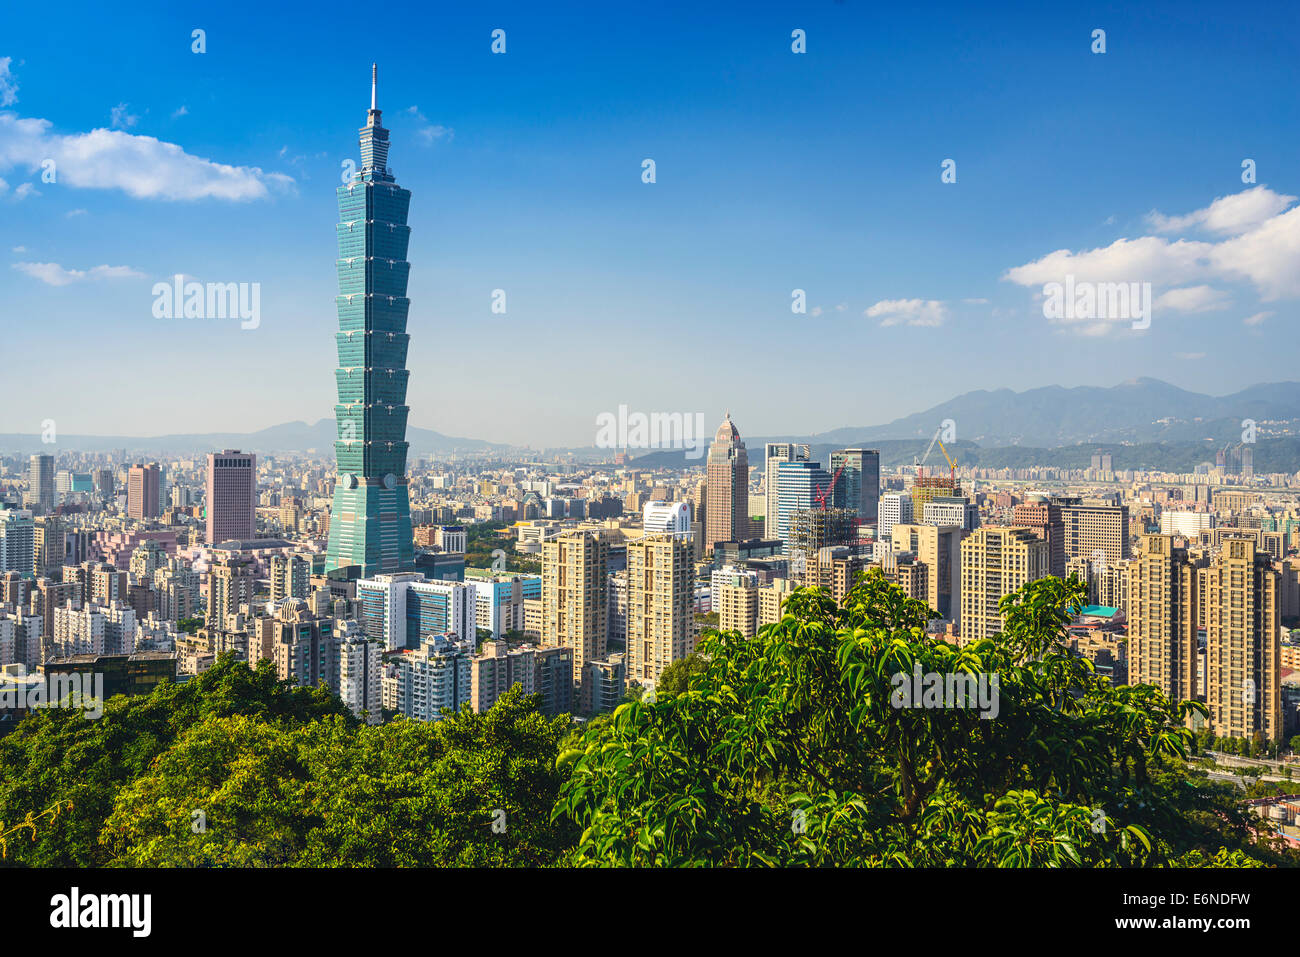 Taipei, Taiwan downtown skyline at the Xinyi Financial District. - Stock Image